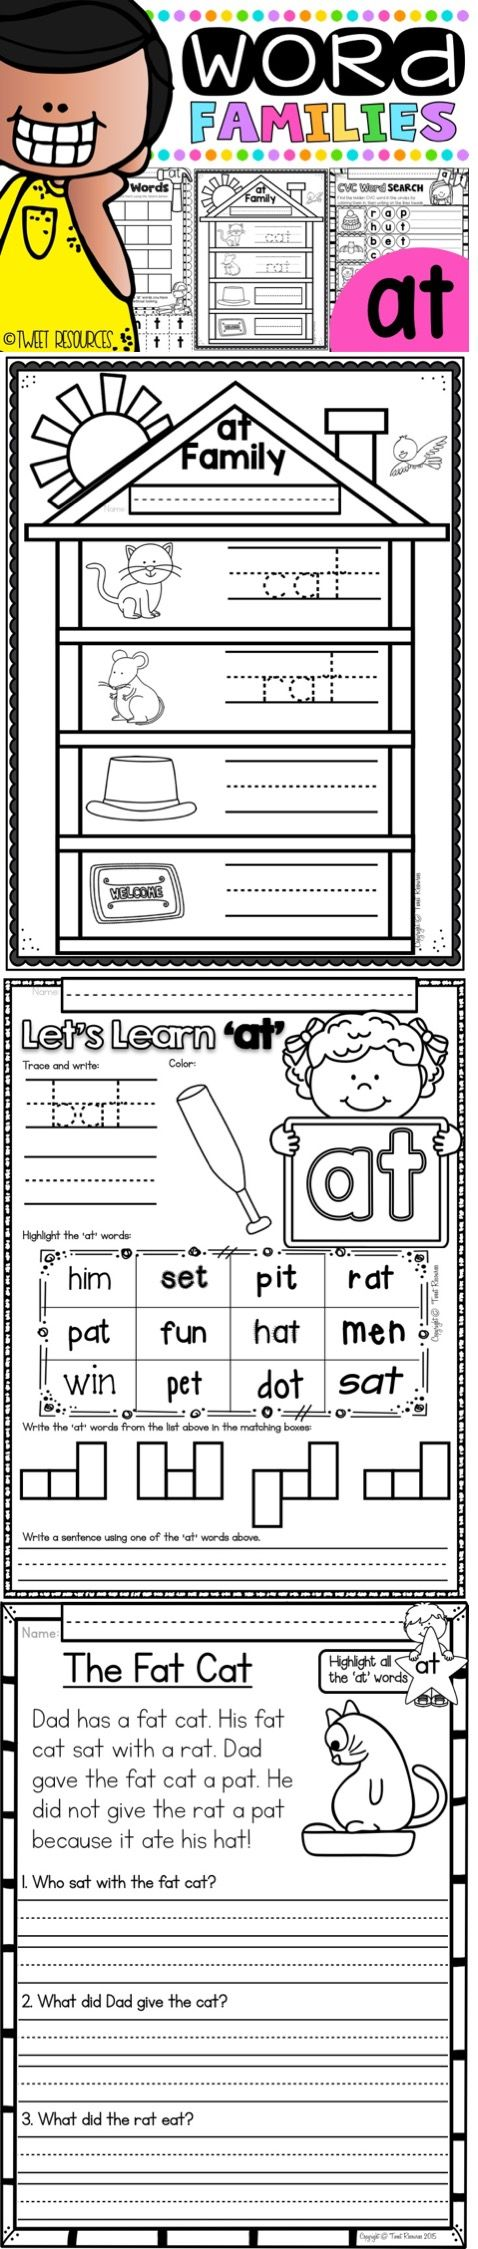 "FREEBIE! Enjoy this FUN AND ENGAGING CVC Word Family freebie by Tweet Resources! "" ""This is a comprehensive pack for this word family. I can't wait to introduce these reinforcing activities to my Kinders"" Cynthia C"